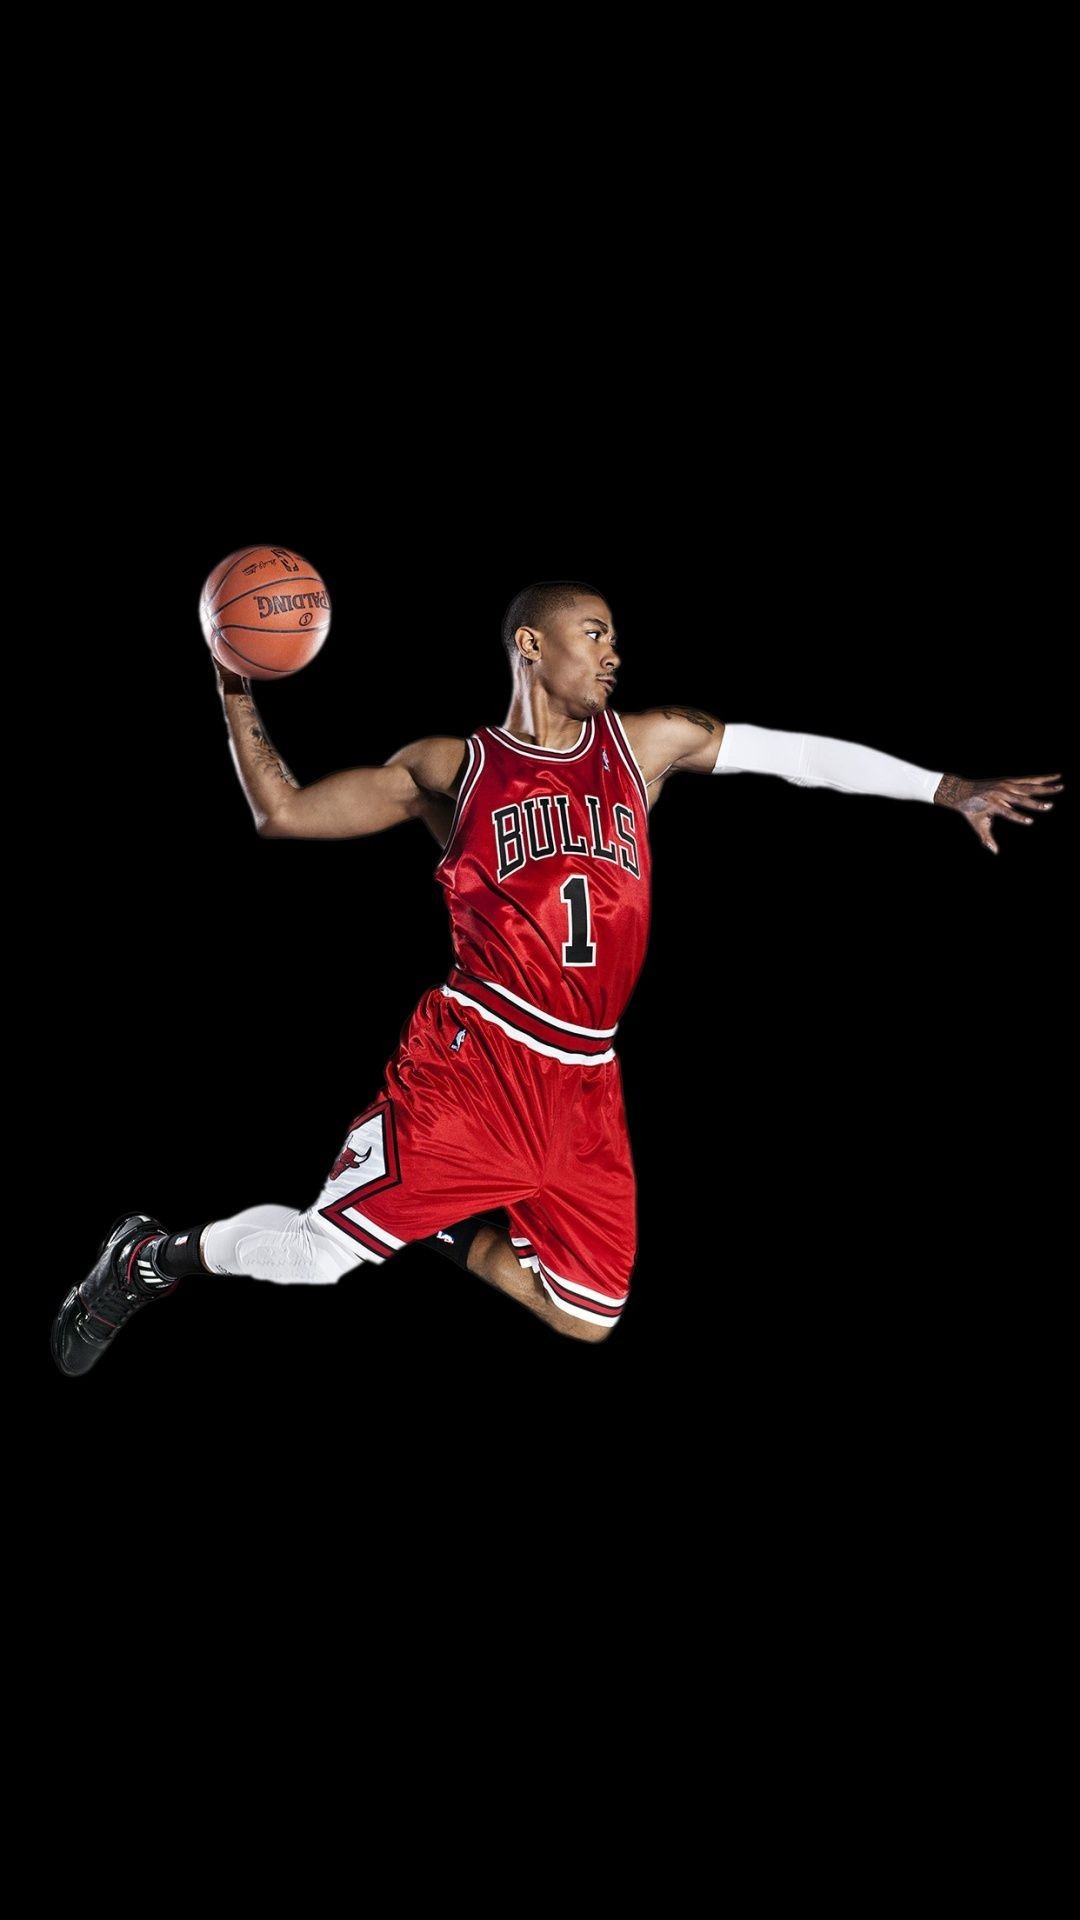 Derrick rose wallpapers 2018 hd 62 background pictures 1536x2304 derrick rose wallpapers hd 2016 thecheapjerseys Gallery